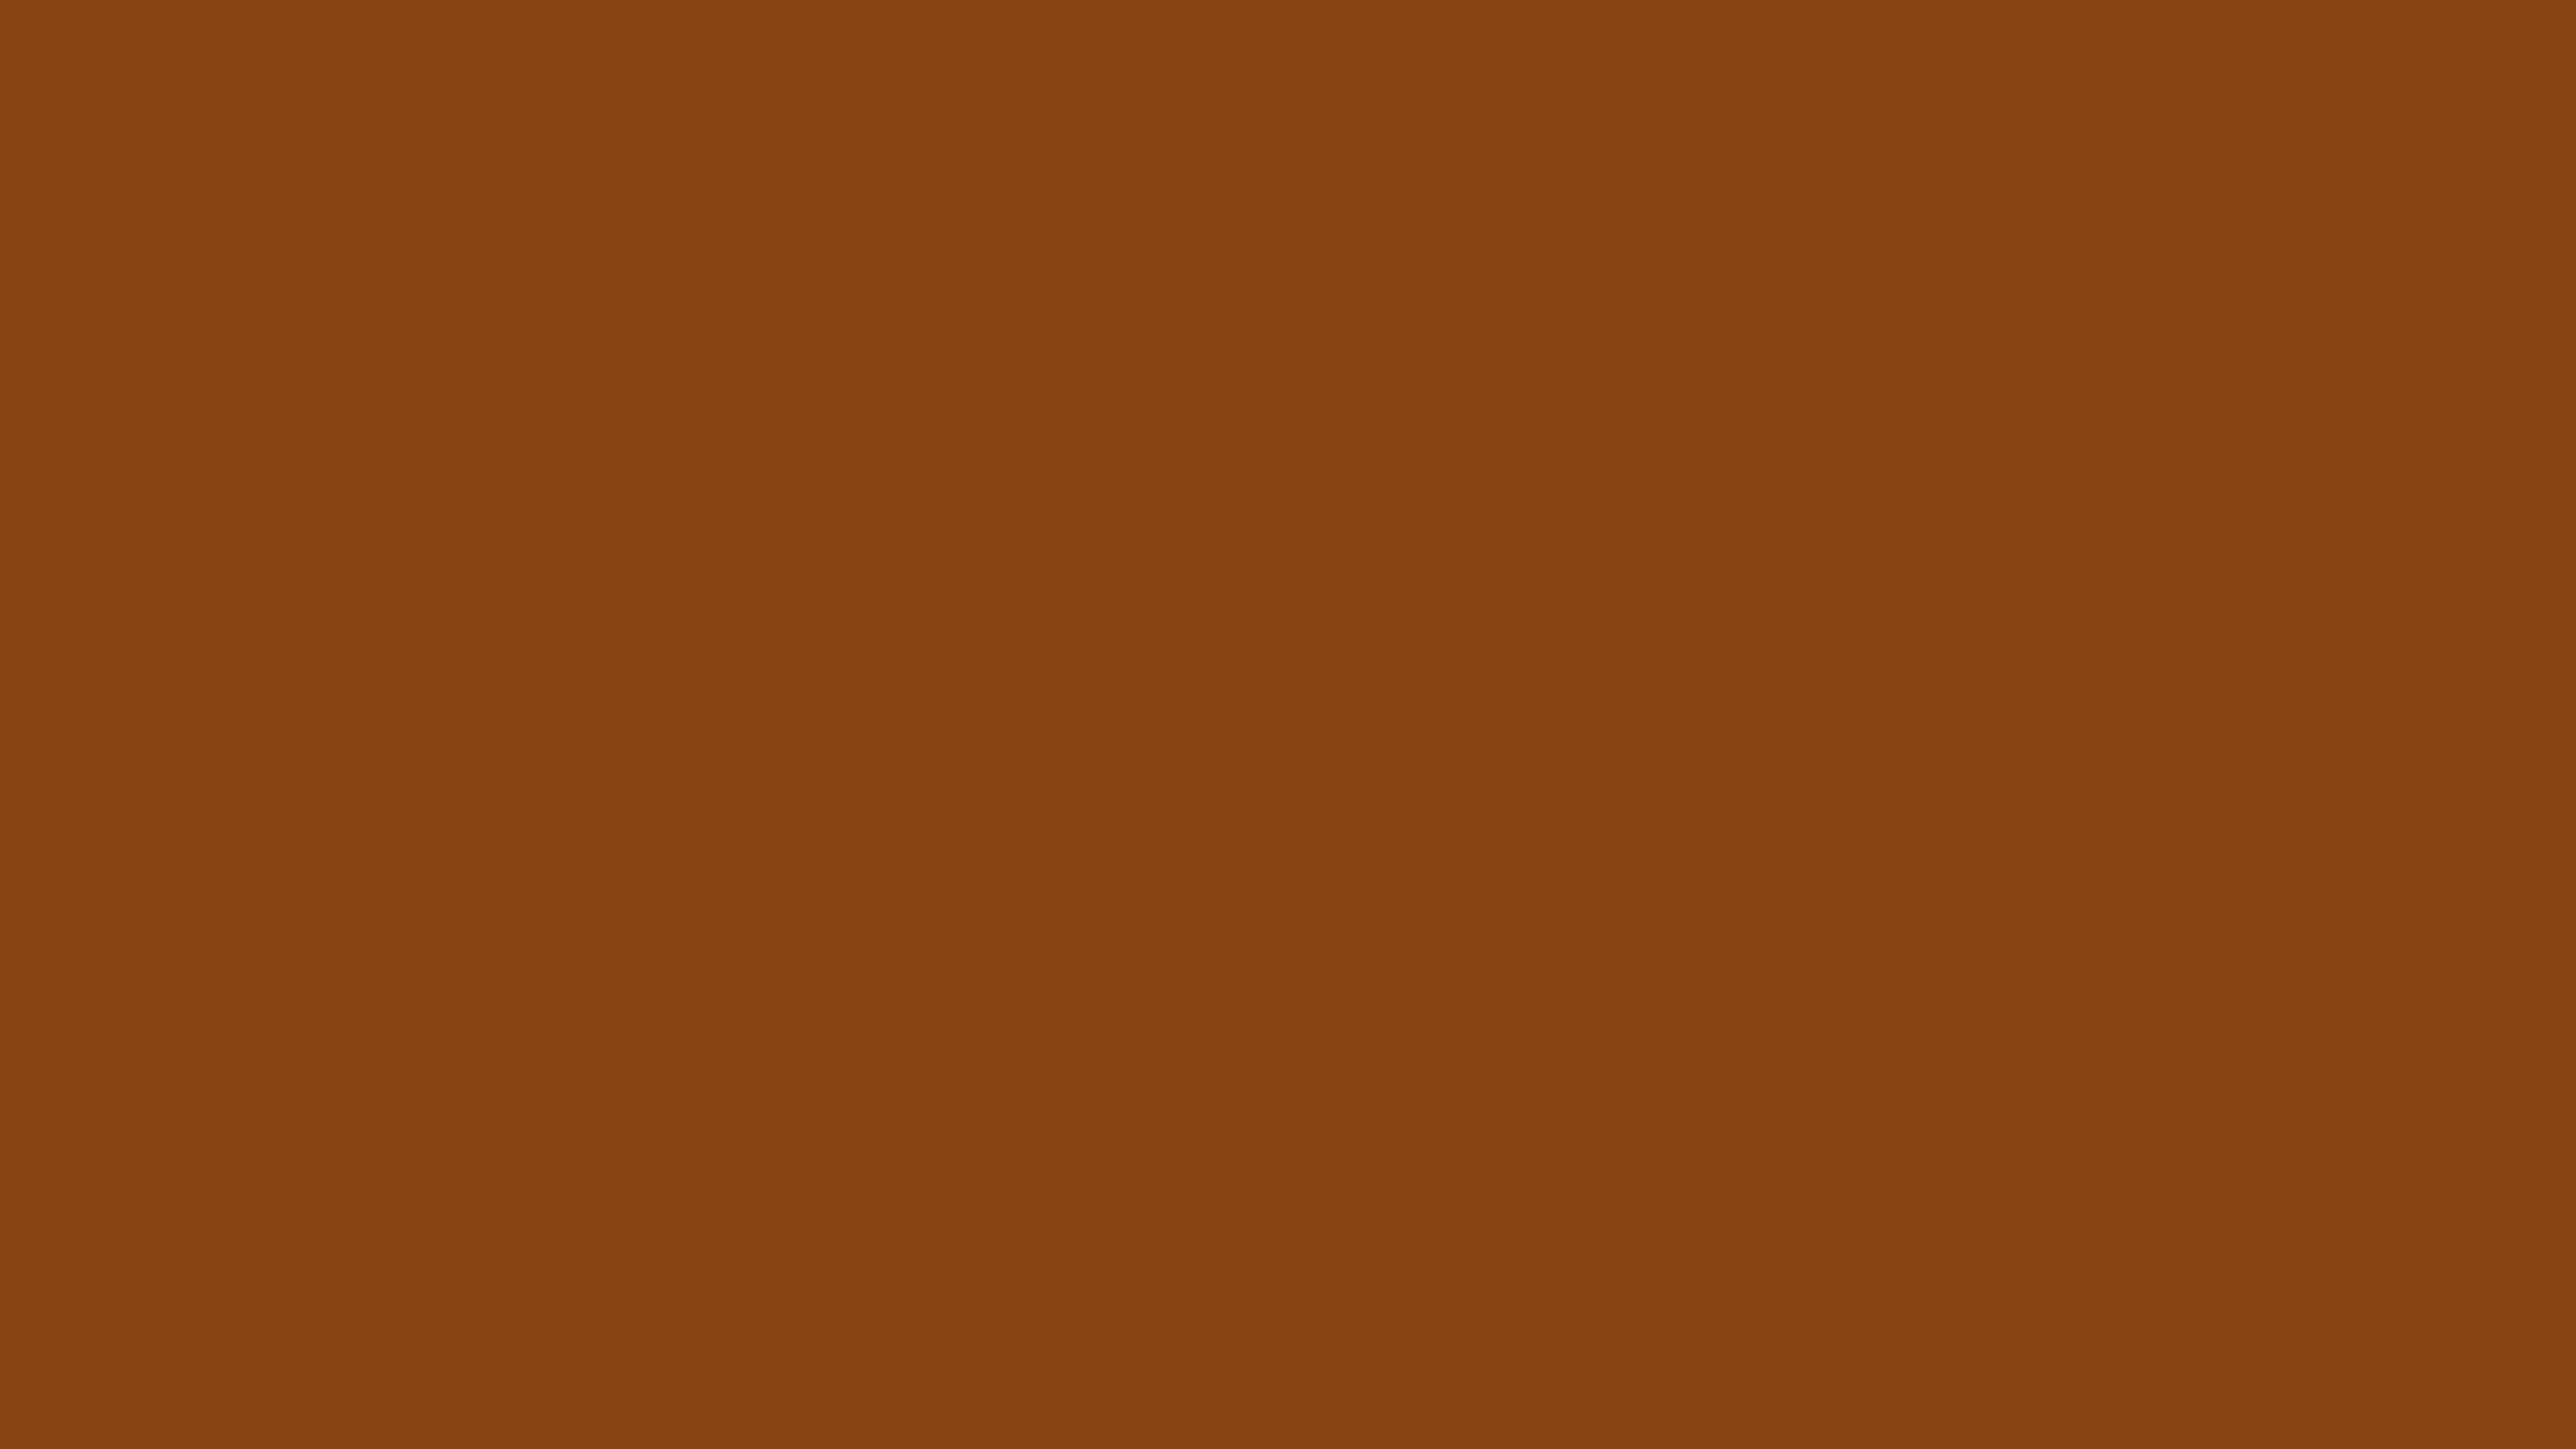 7680x4320 Saddle Brown Solid Color Background